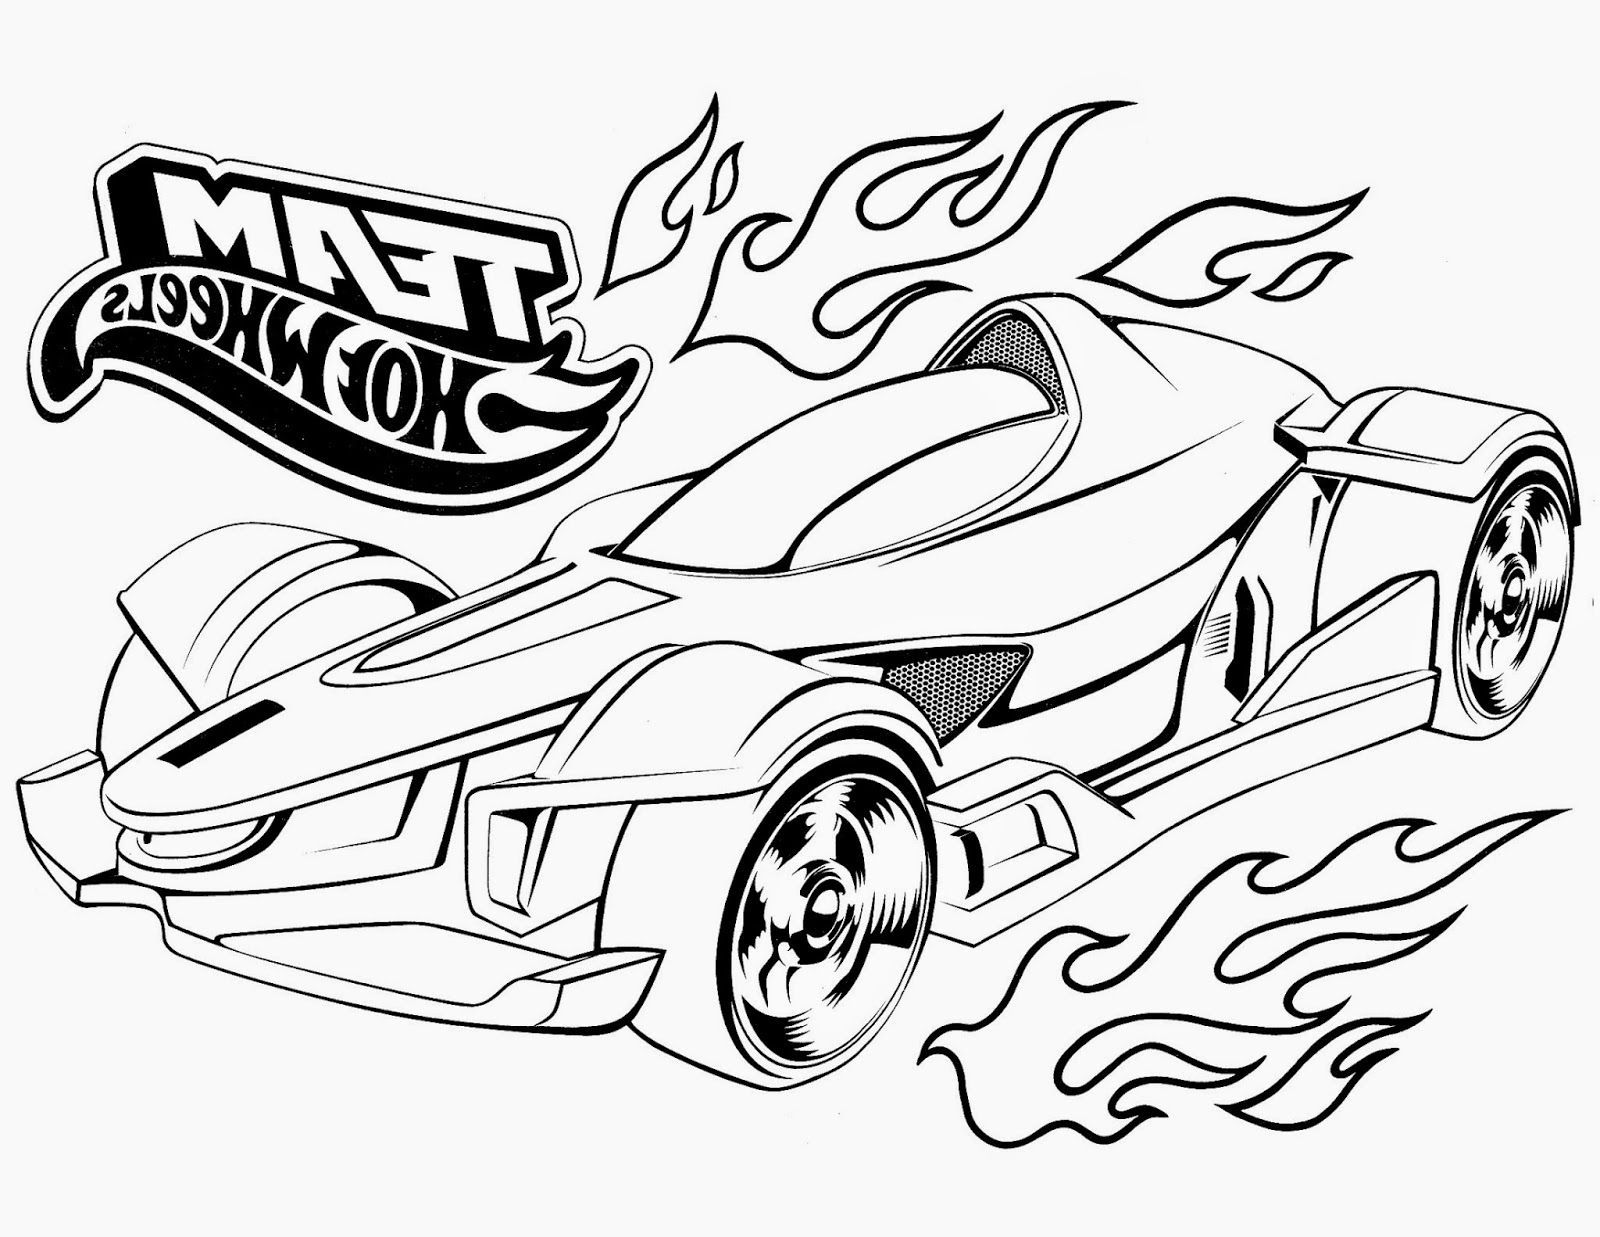 Hot Wheels Coloring Pages Cars coloring pages, Monster